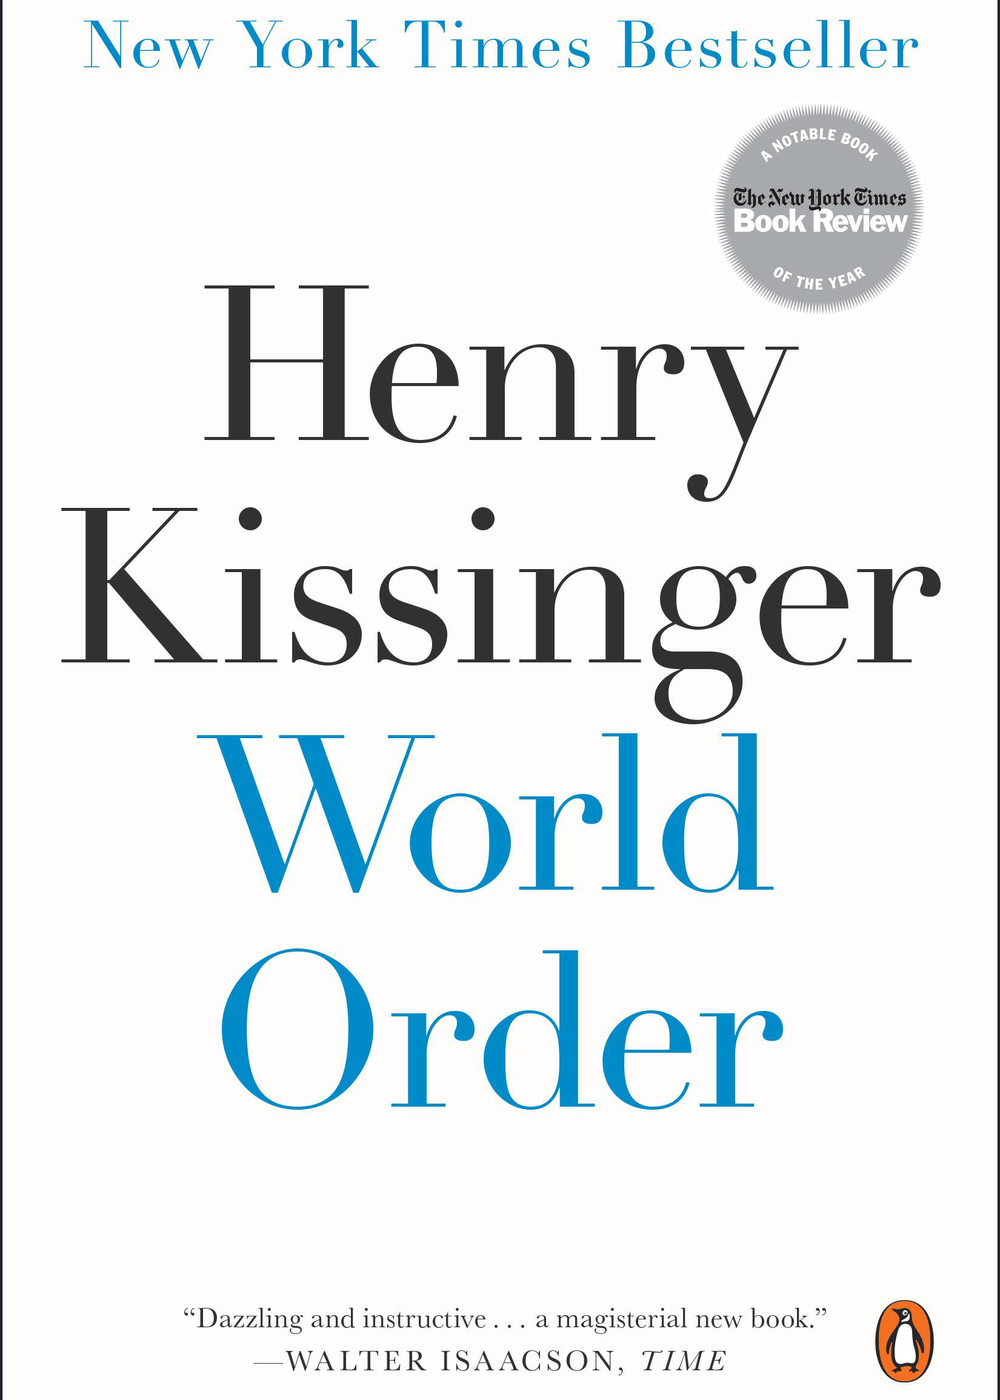 Kissinger, Henry - World Order.jpg